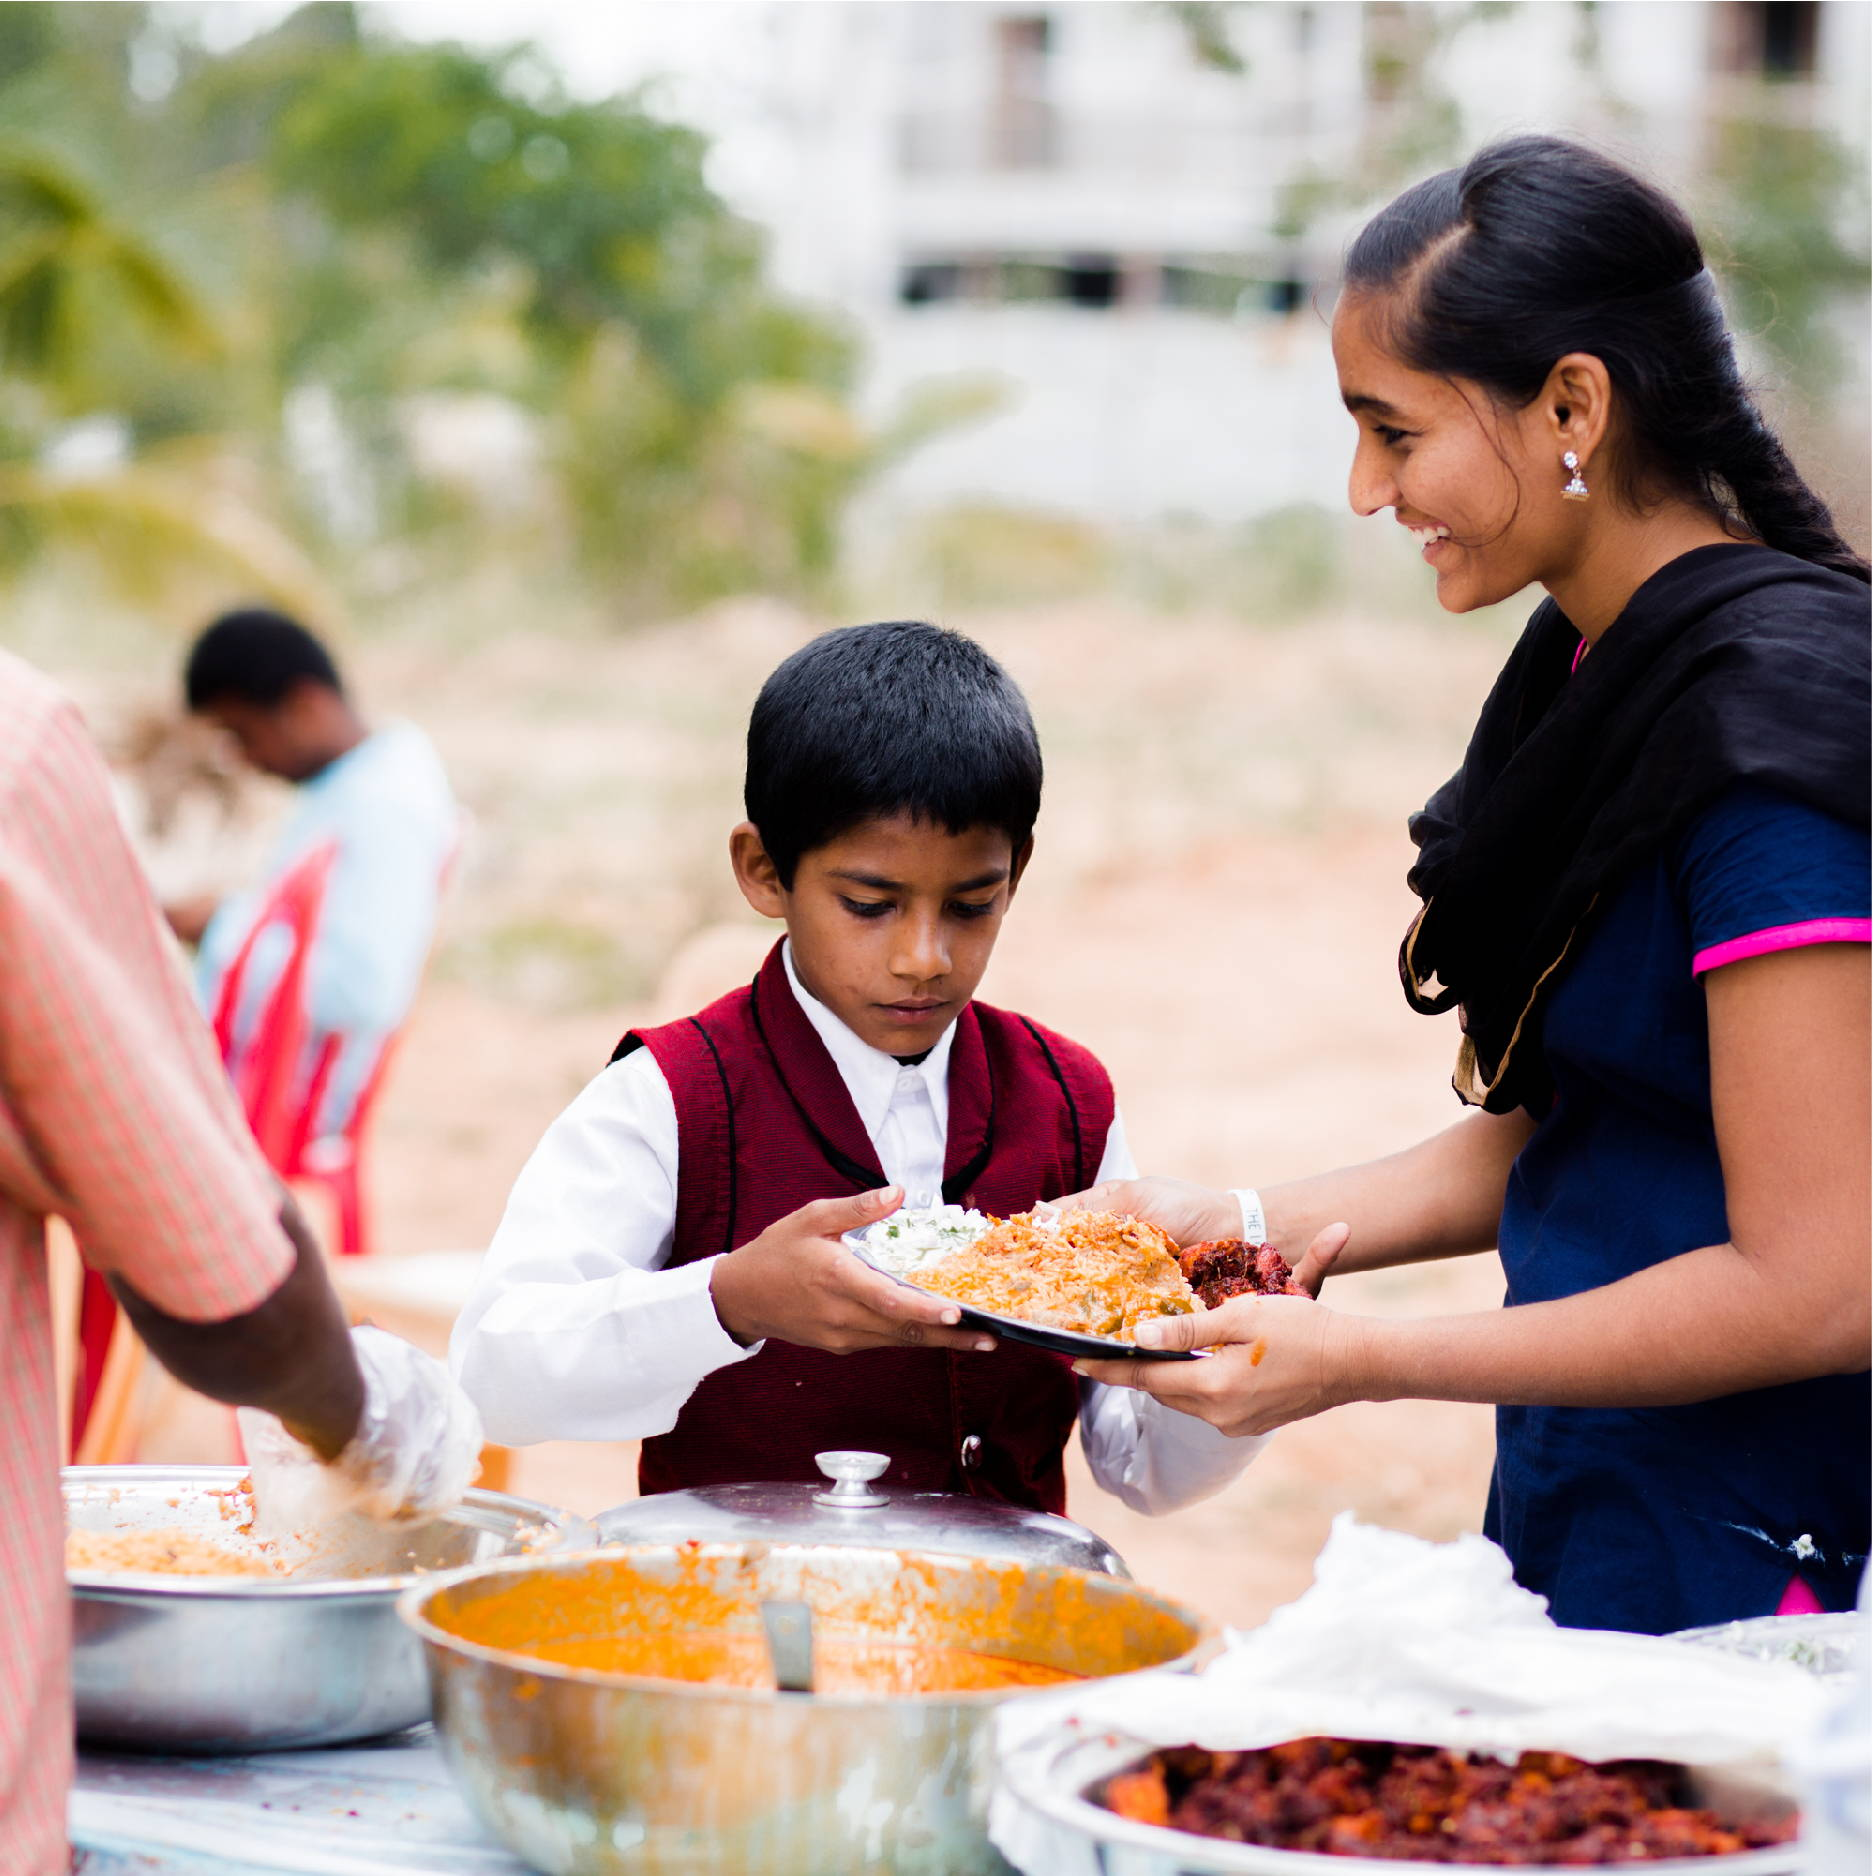 A young boy in red is served a plate of Indian food by a smiling teenage girl at Violet's Children's Home.